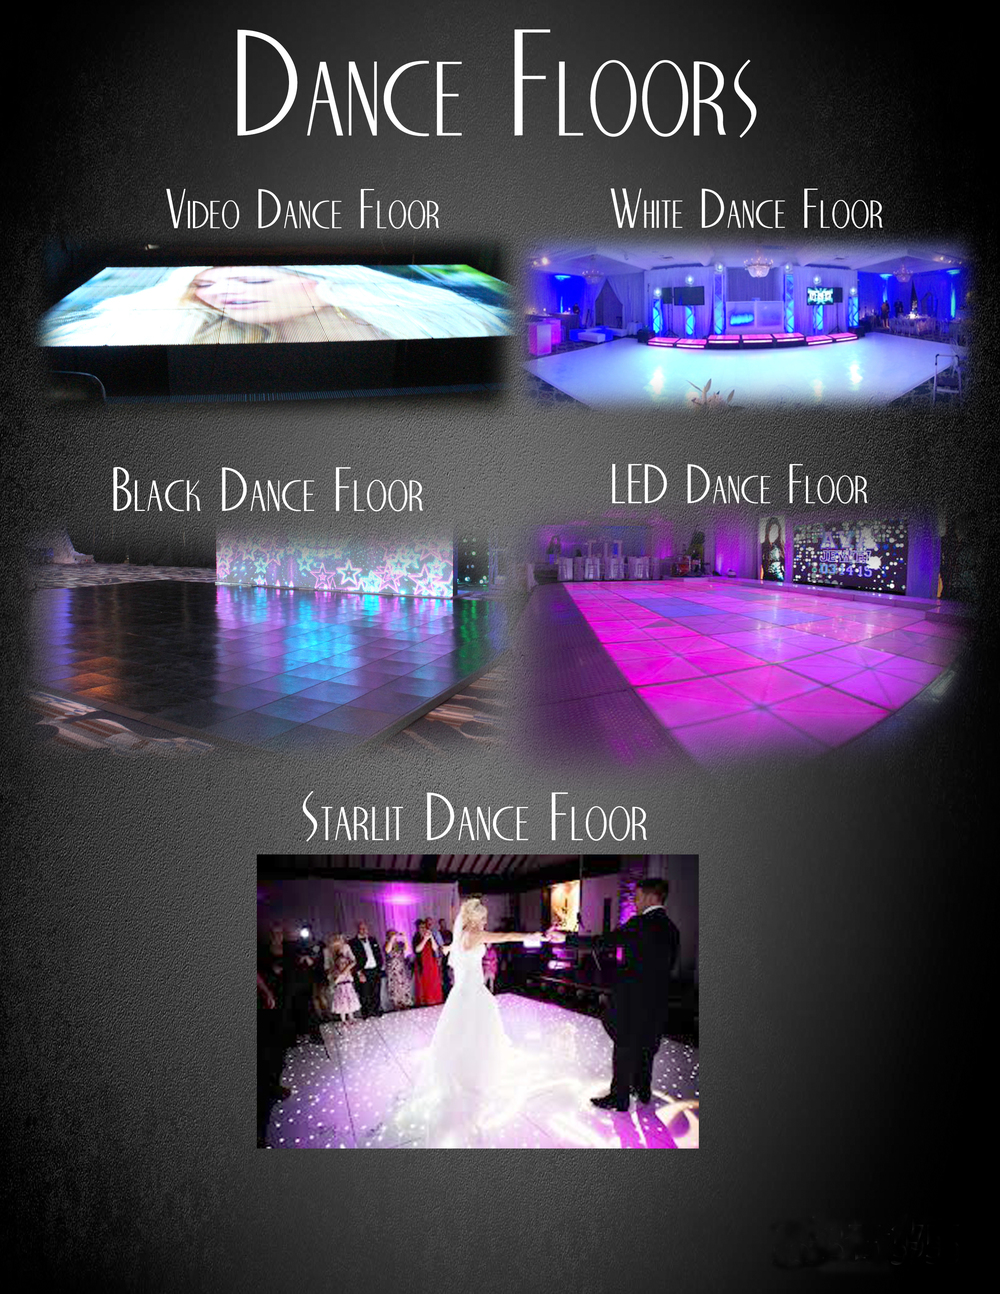 P5_Dance Floors.jpg